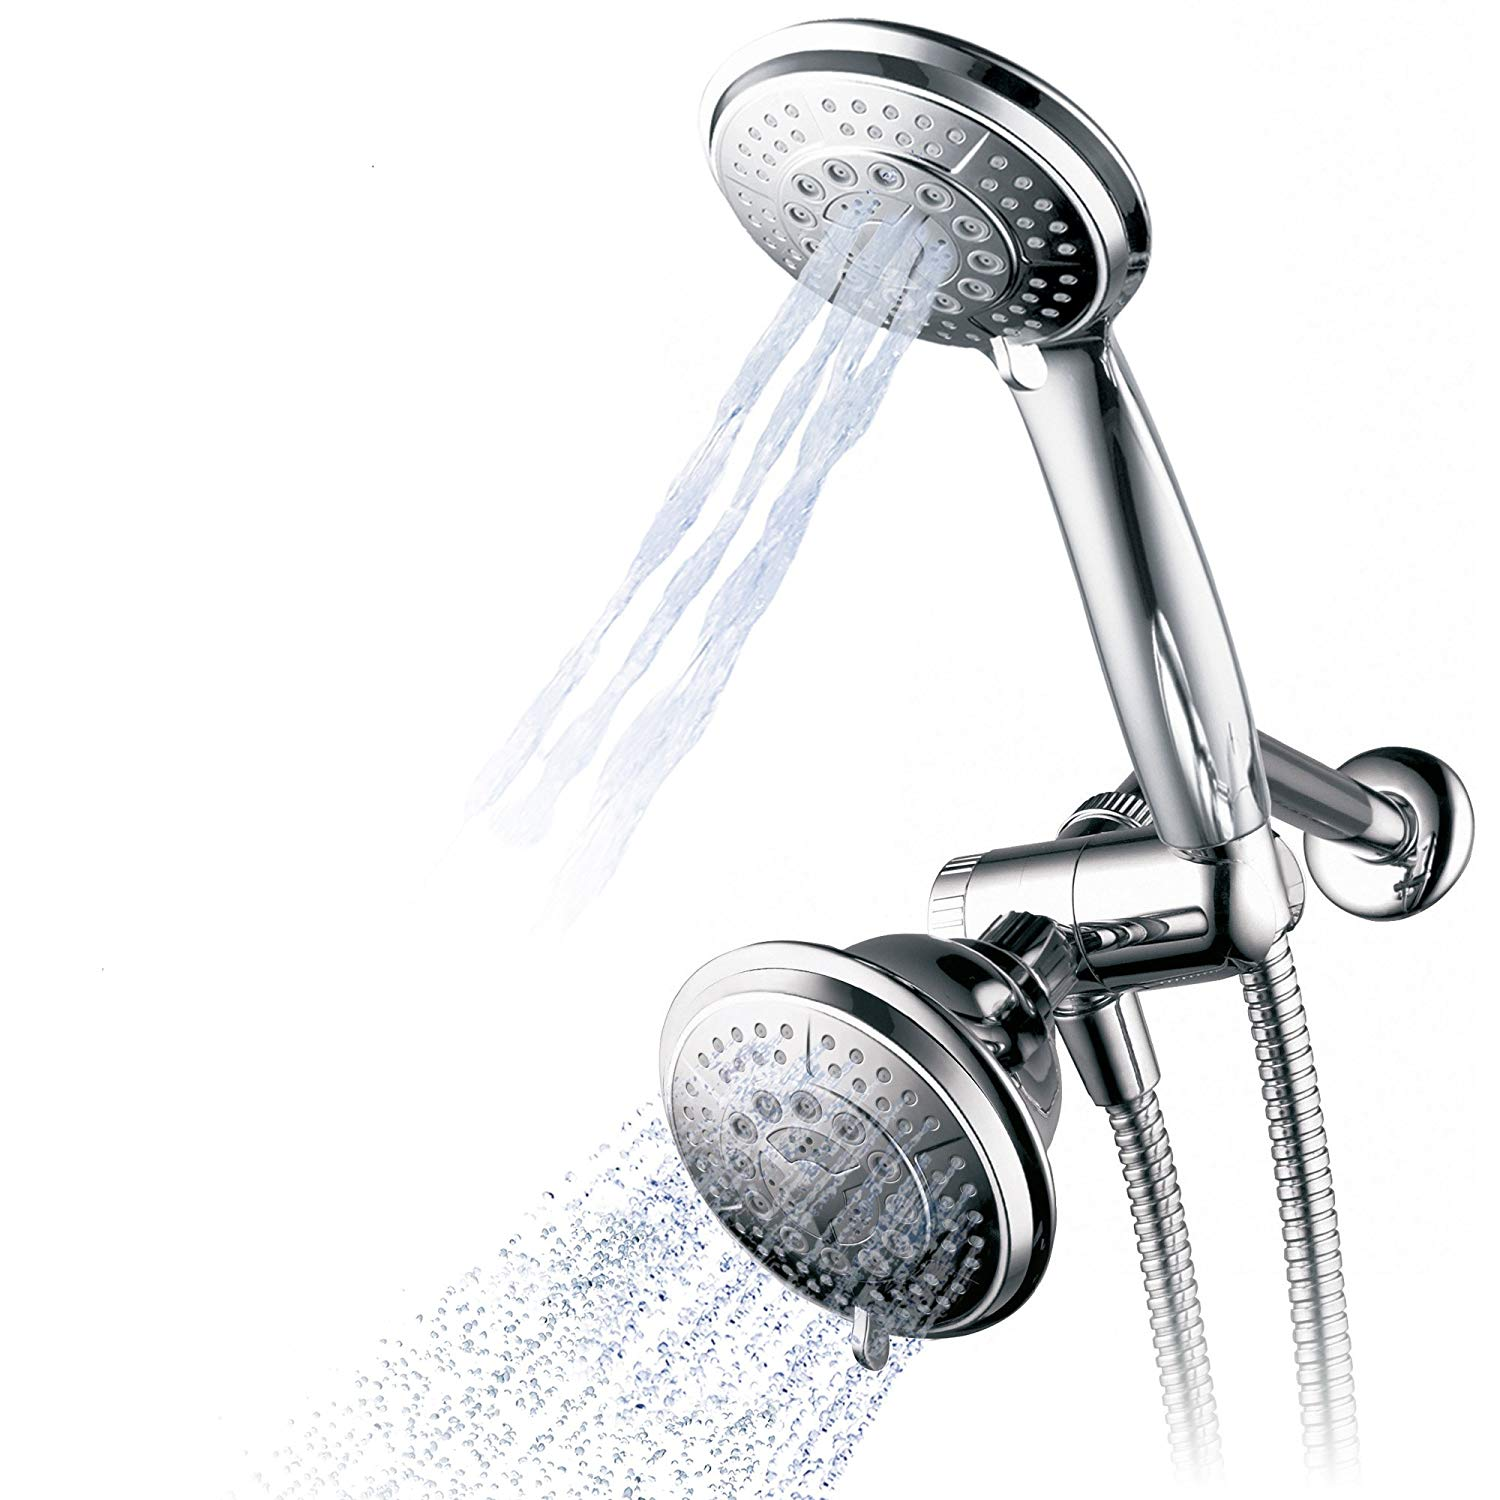 Hydroluxe Shower Head Handheld Shower Combo_1